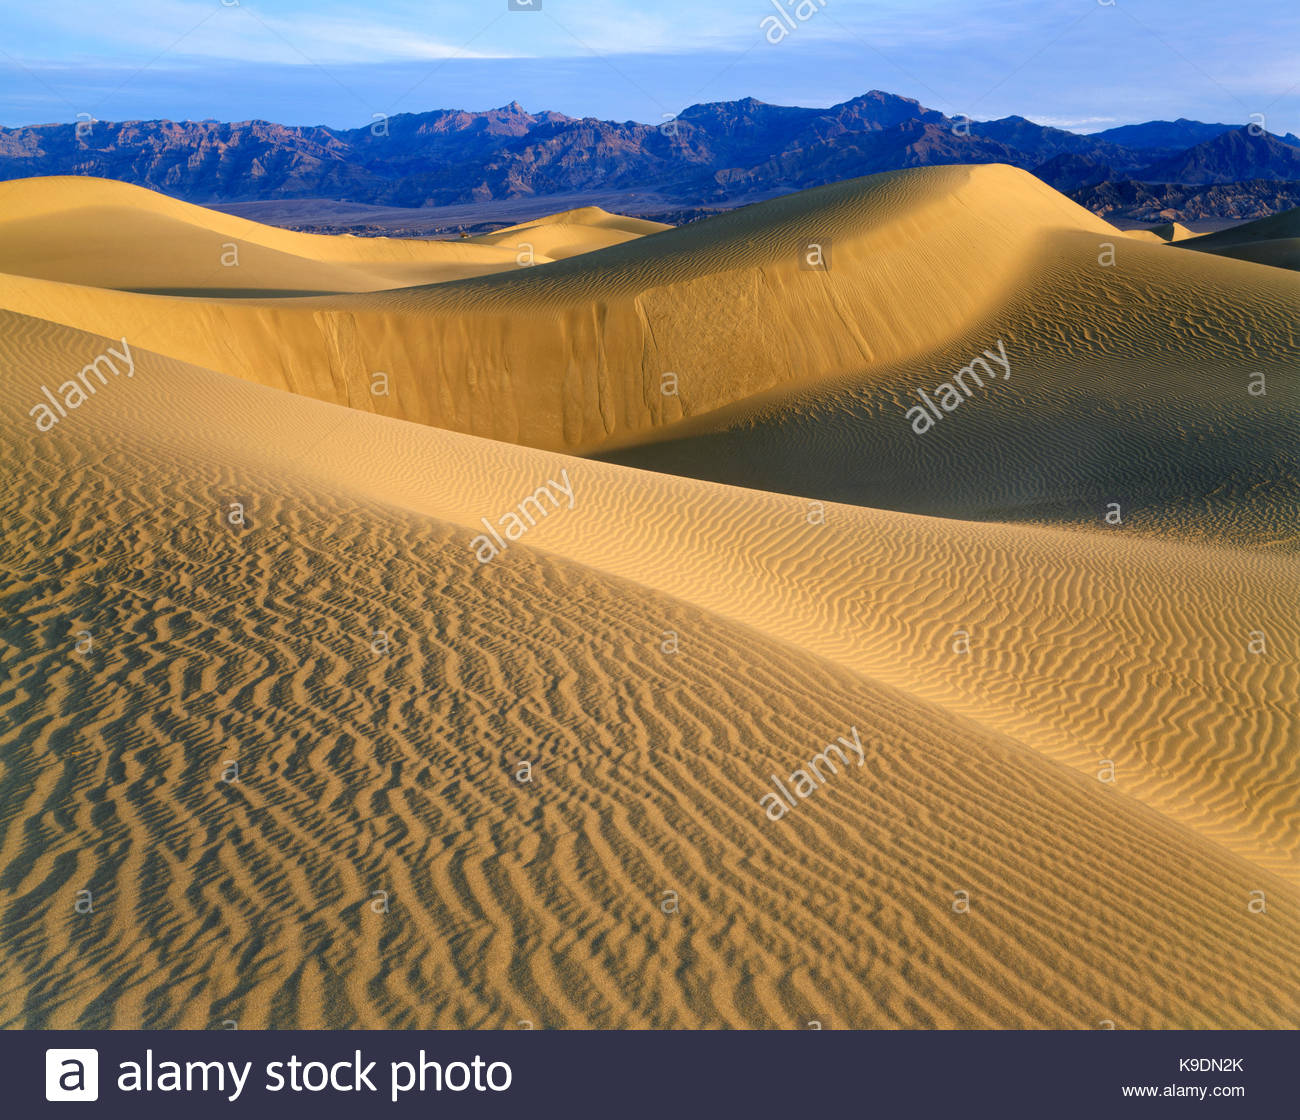 Sand Dunes near Mesquite Flat, Death Valley National Park, California - Stock Image